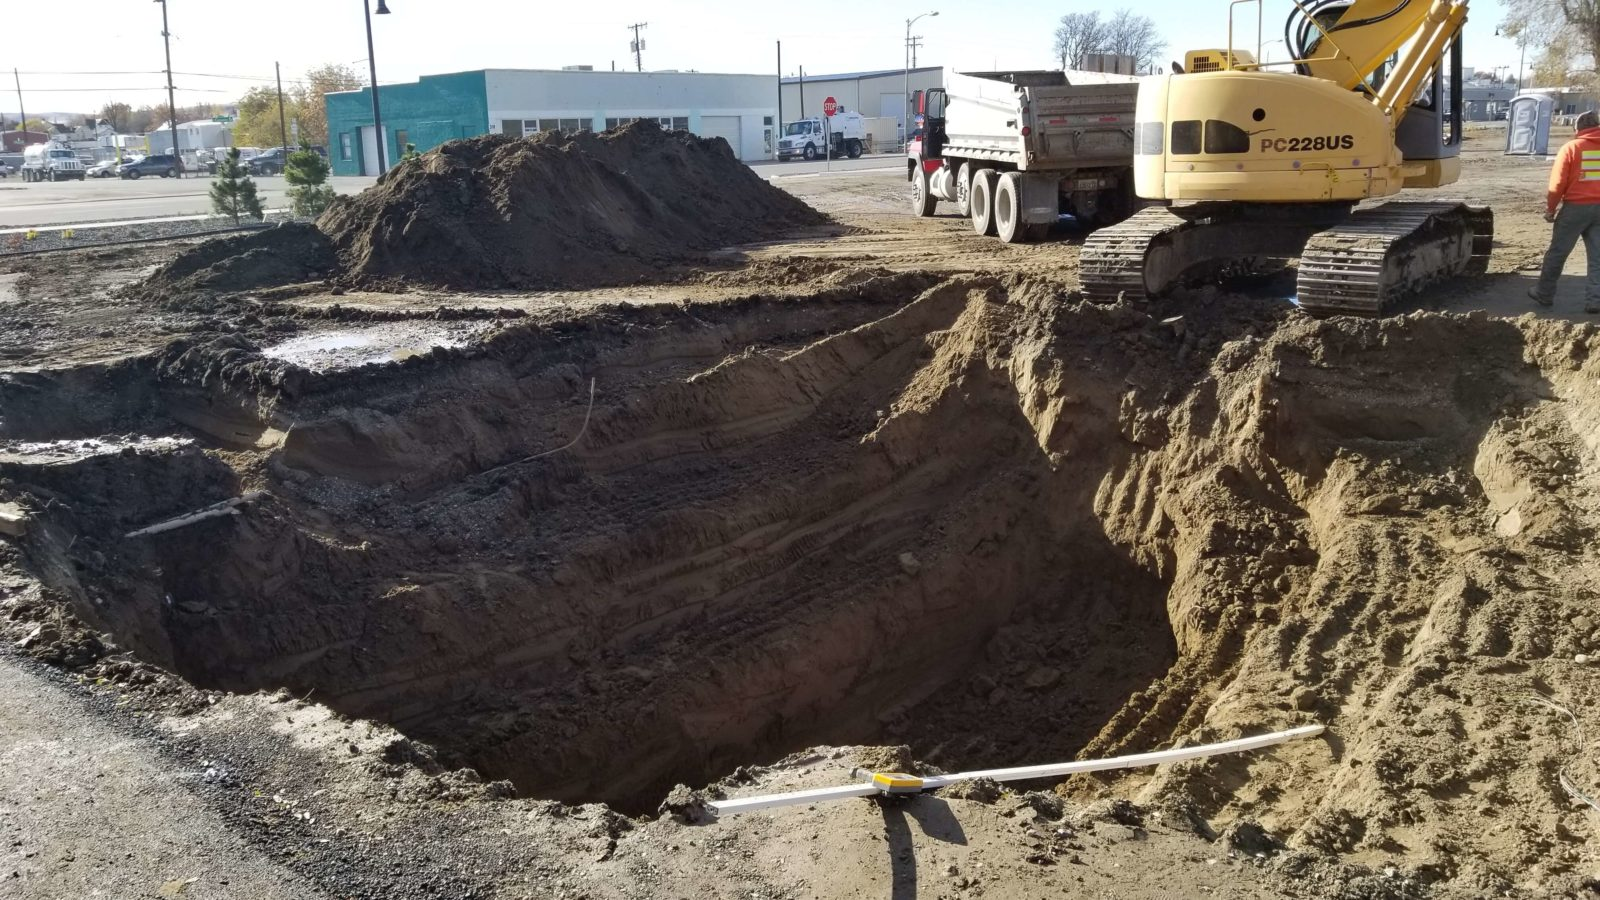 Contractors dig hole for wastewater treatment system.